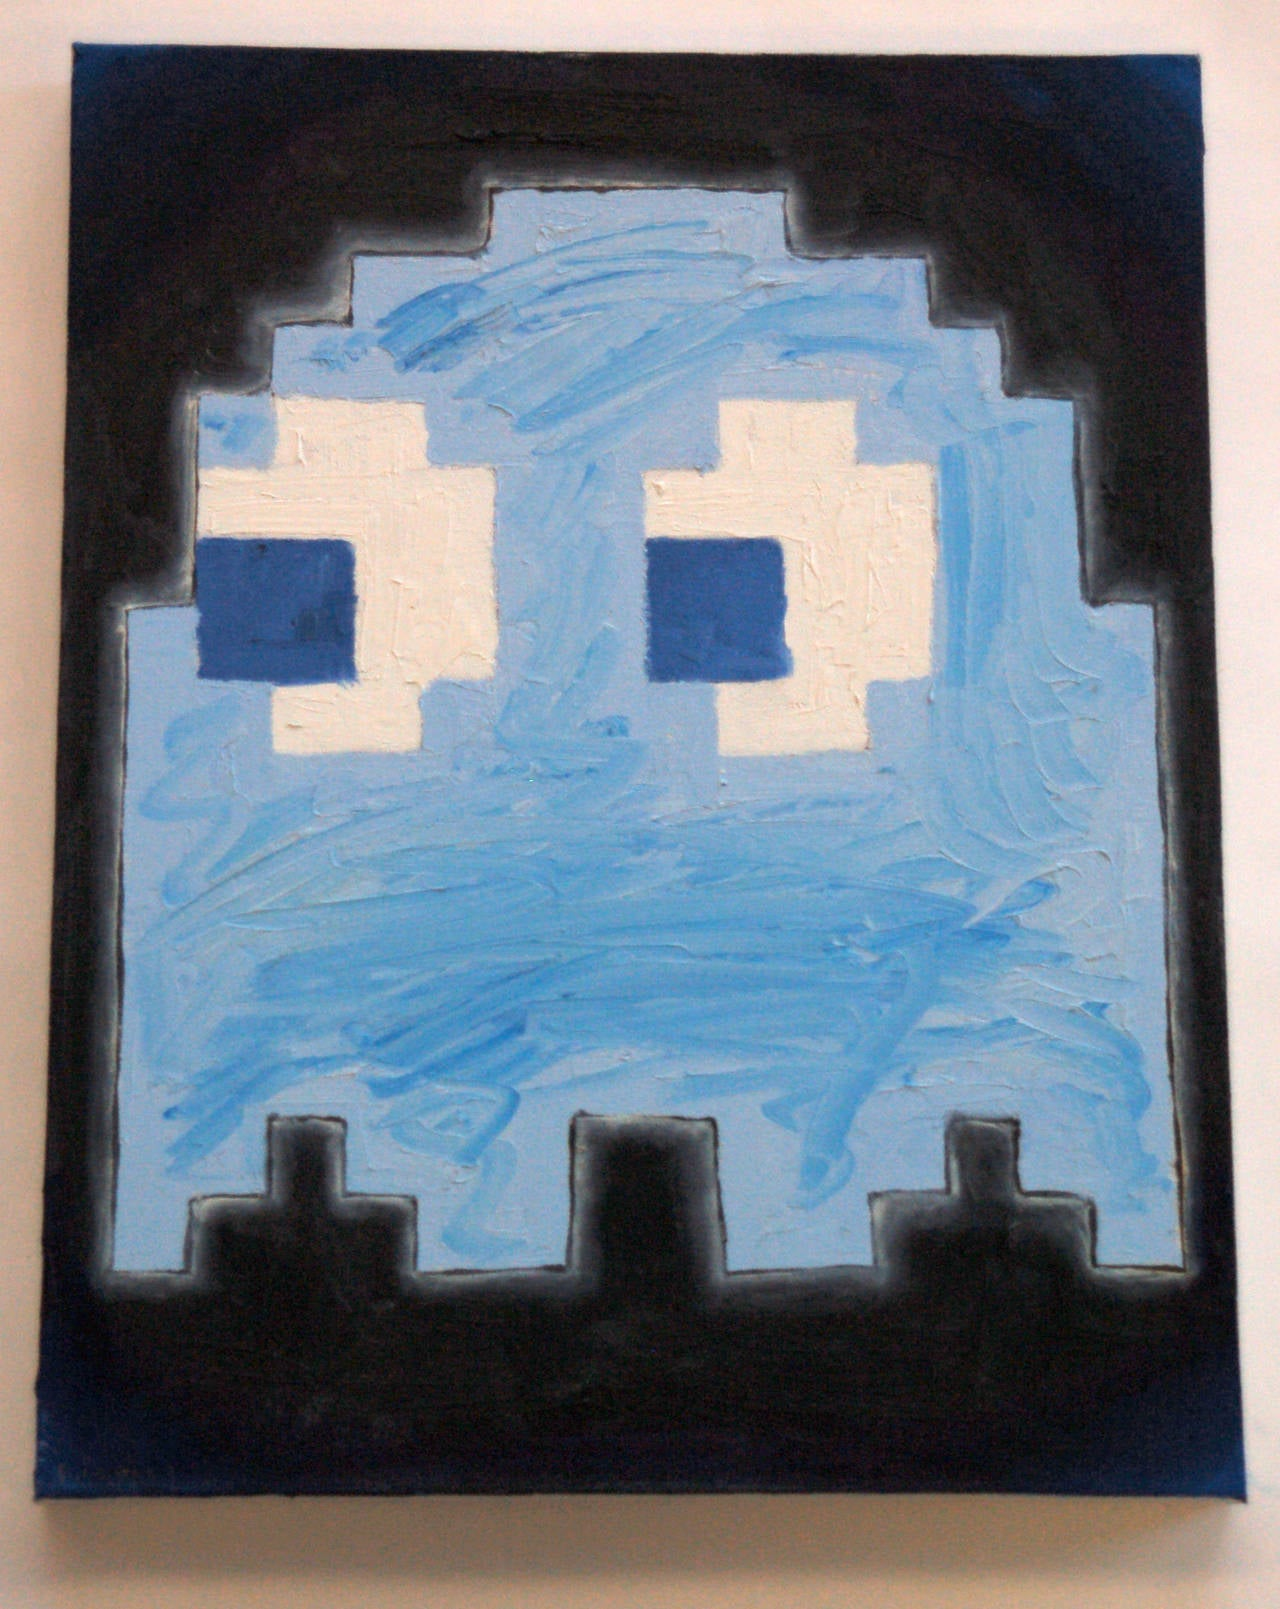 Pac-Man Ghosts (set of 4) - Painting by Patrick Lichty